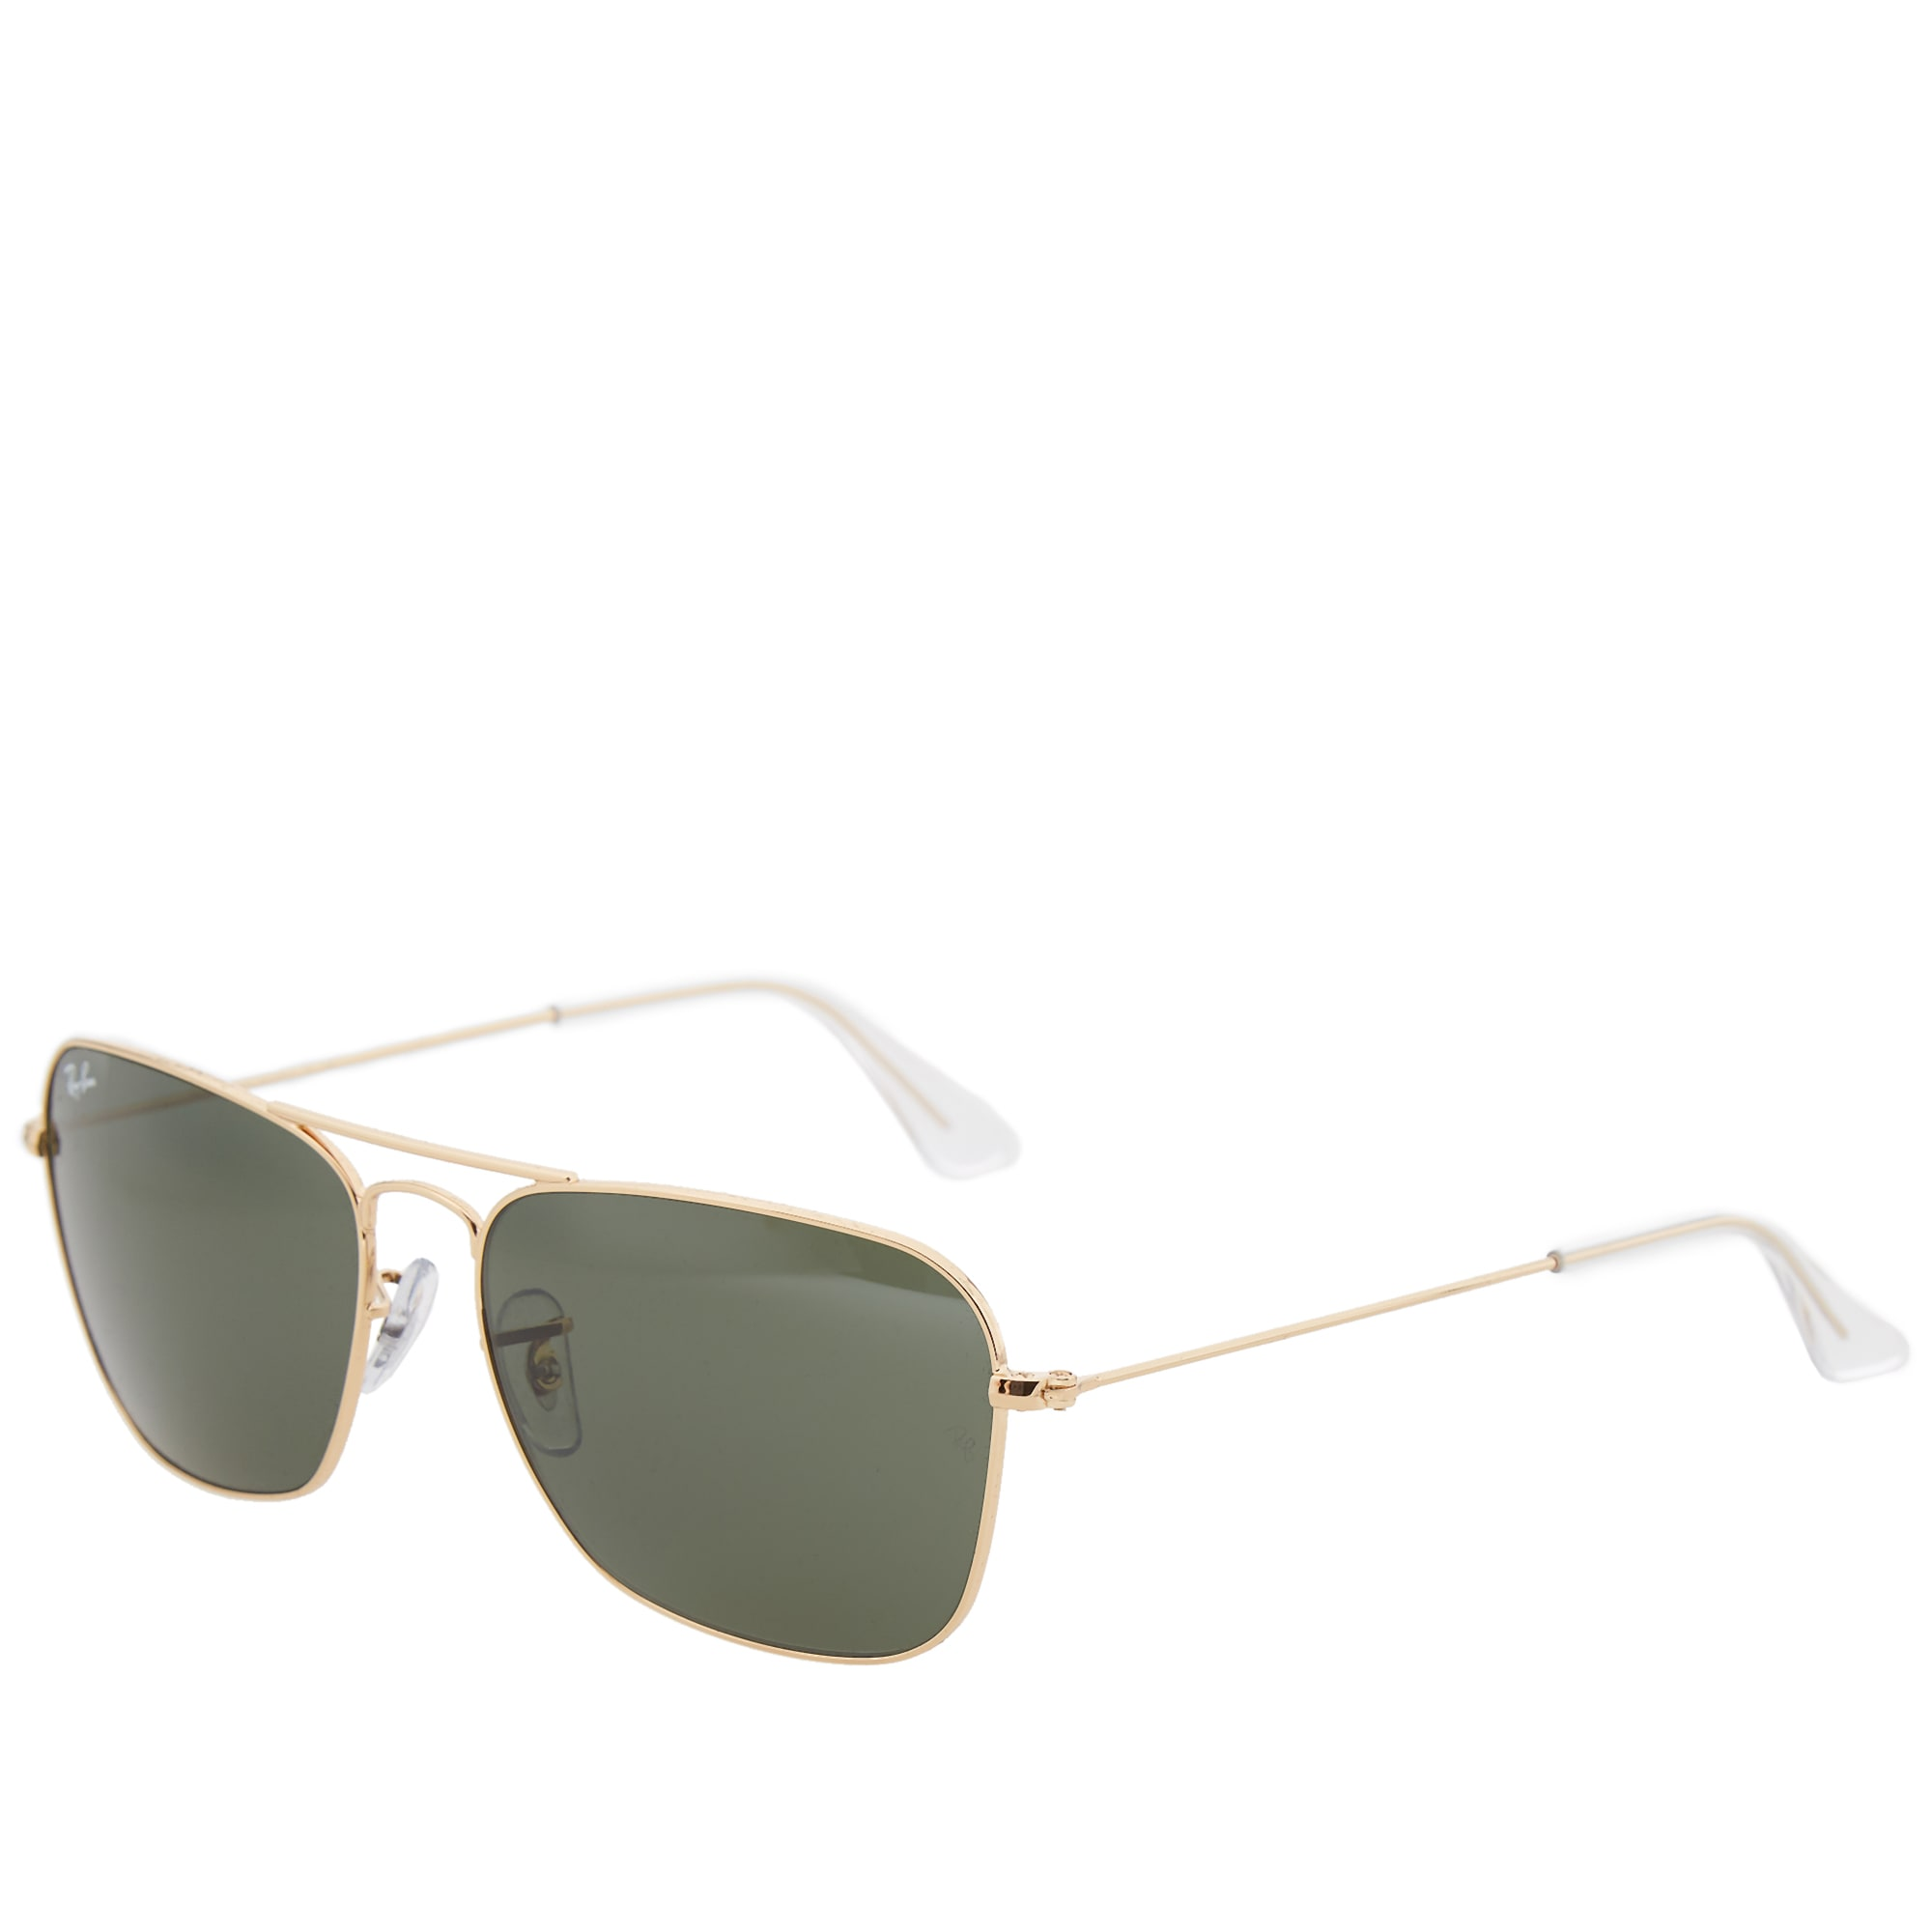 Is Ray Ban Sale Real